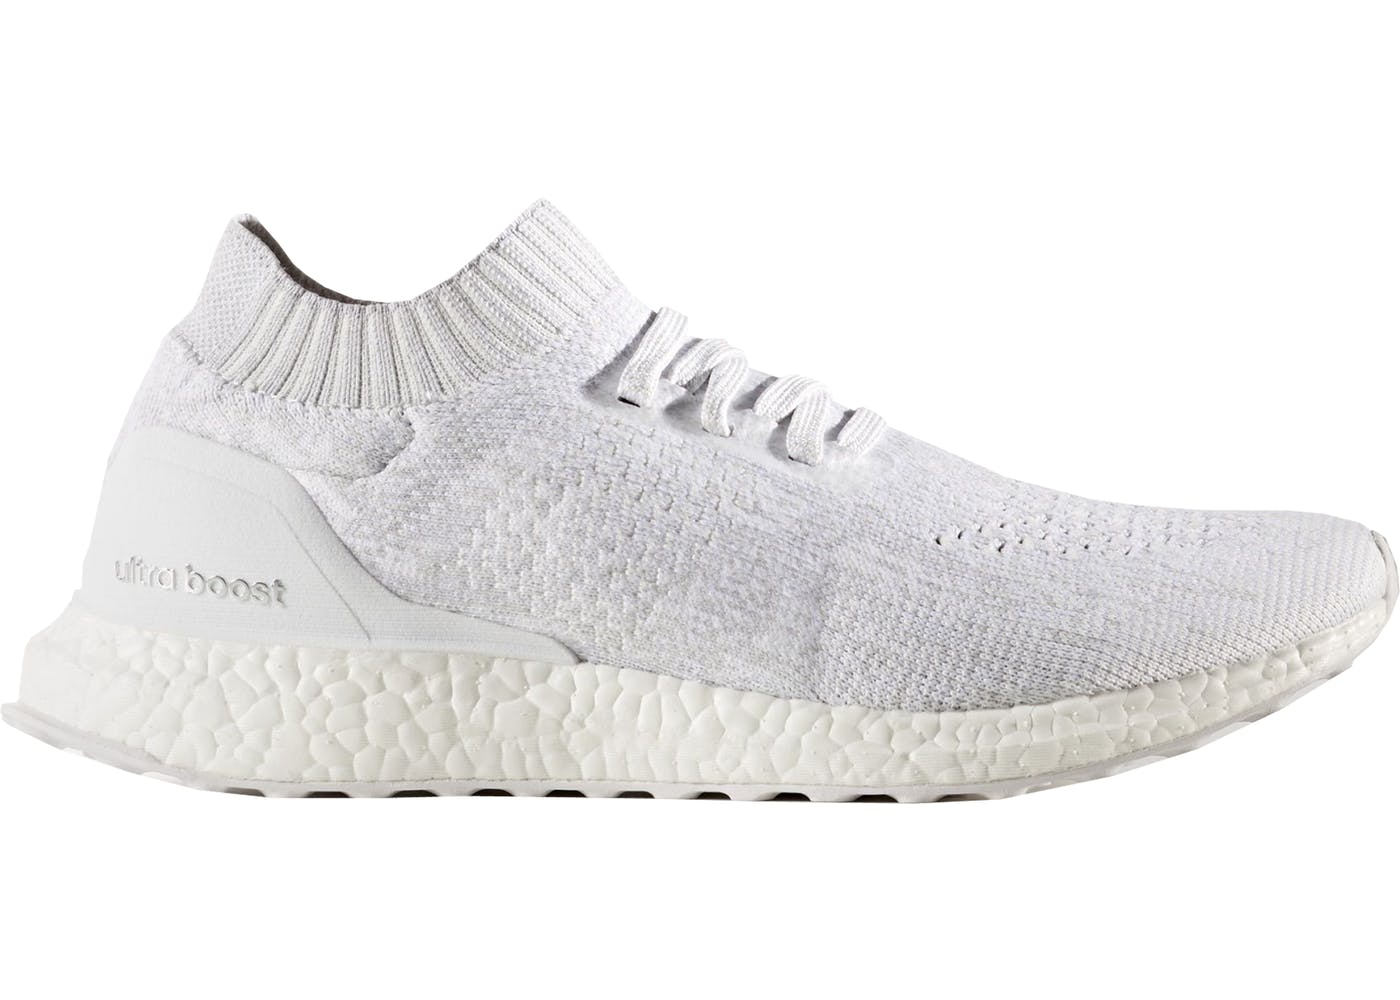 adidas ultra boost uncaged triple white 2017. Black Bedroom Furniture Sets. Home Design Ideas